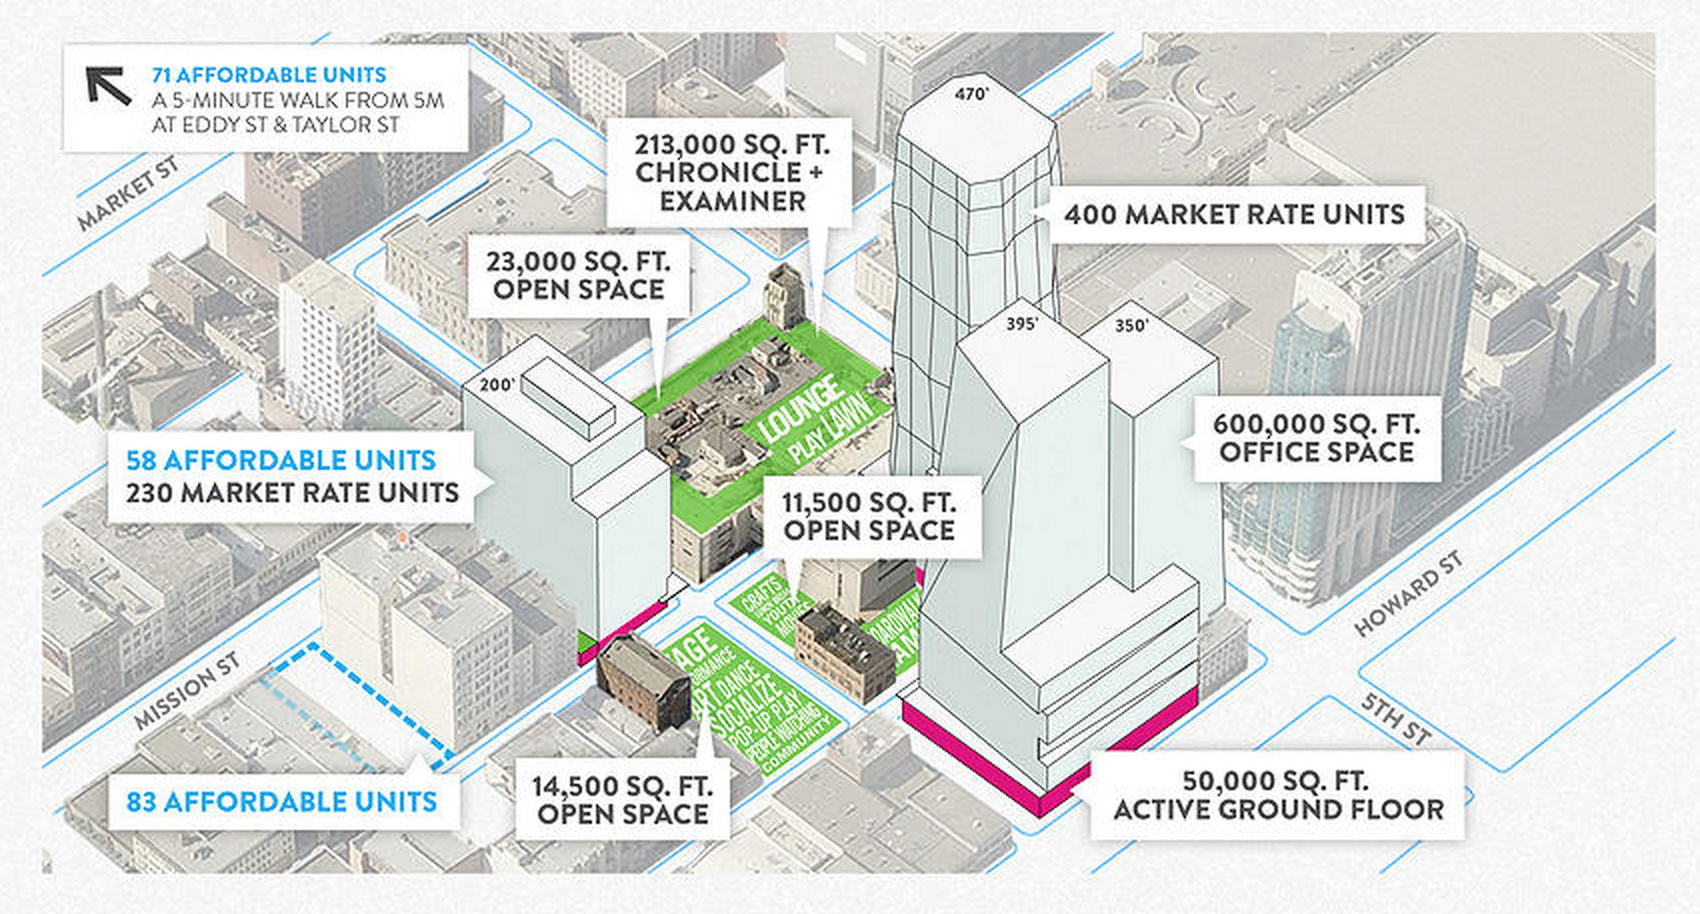 Laura Crescimano's  SITELAB Urban Studio developed the programming, architectural framework, and public realm for the 5M project on a 4 acre parcel in San Francisco.